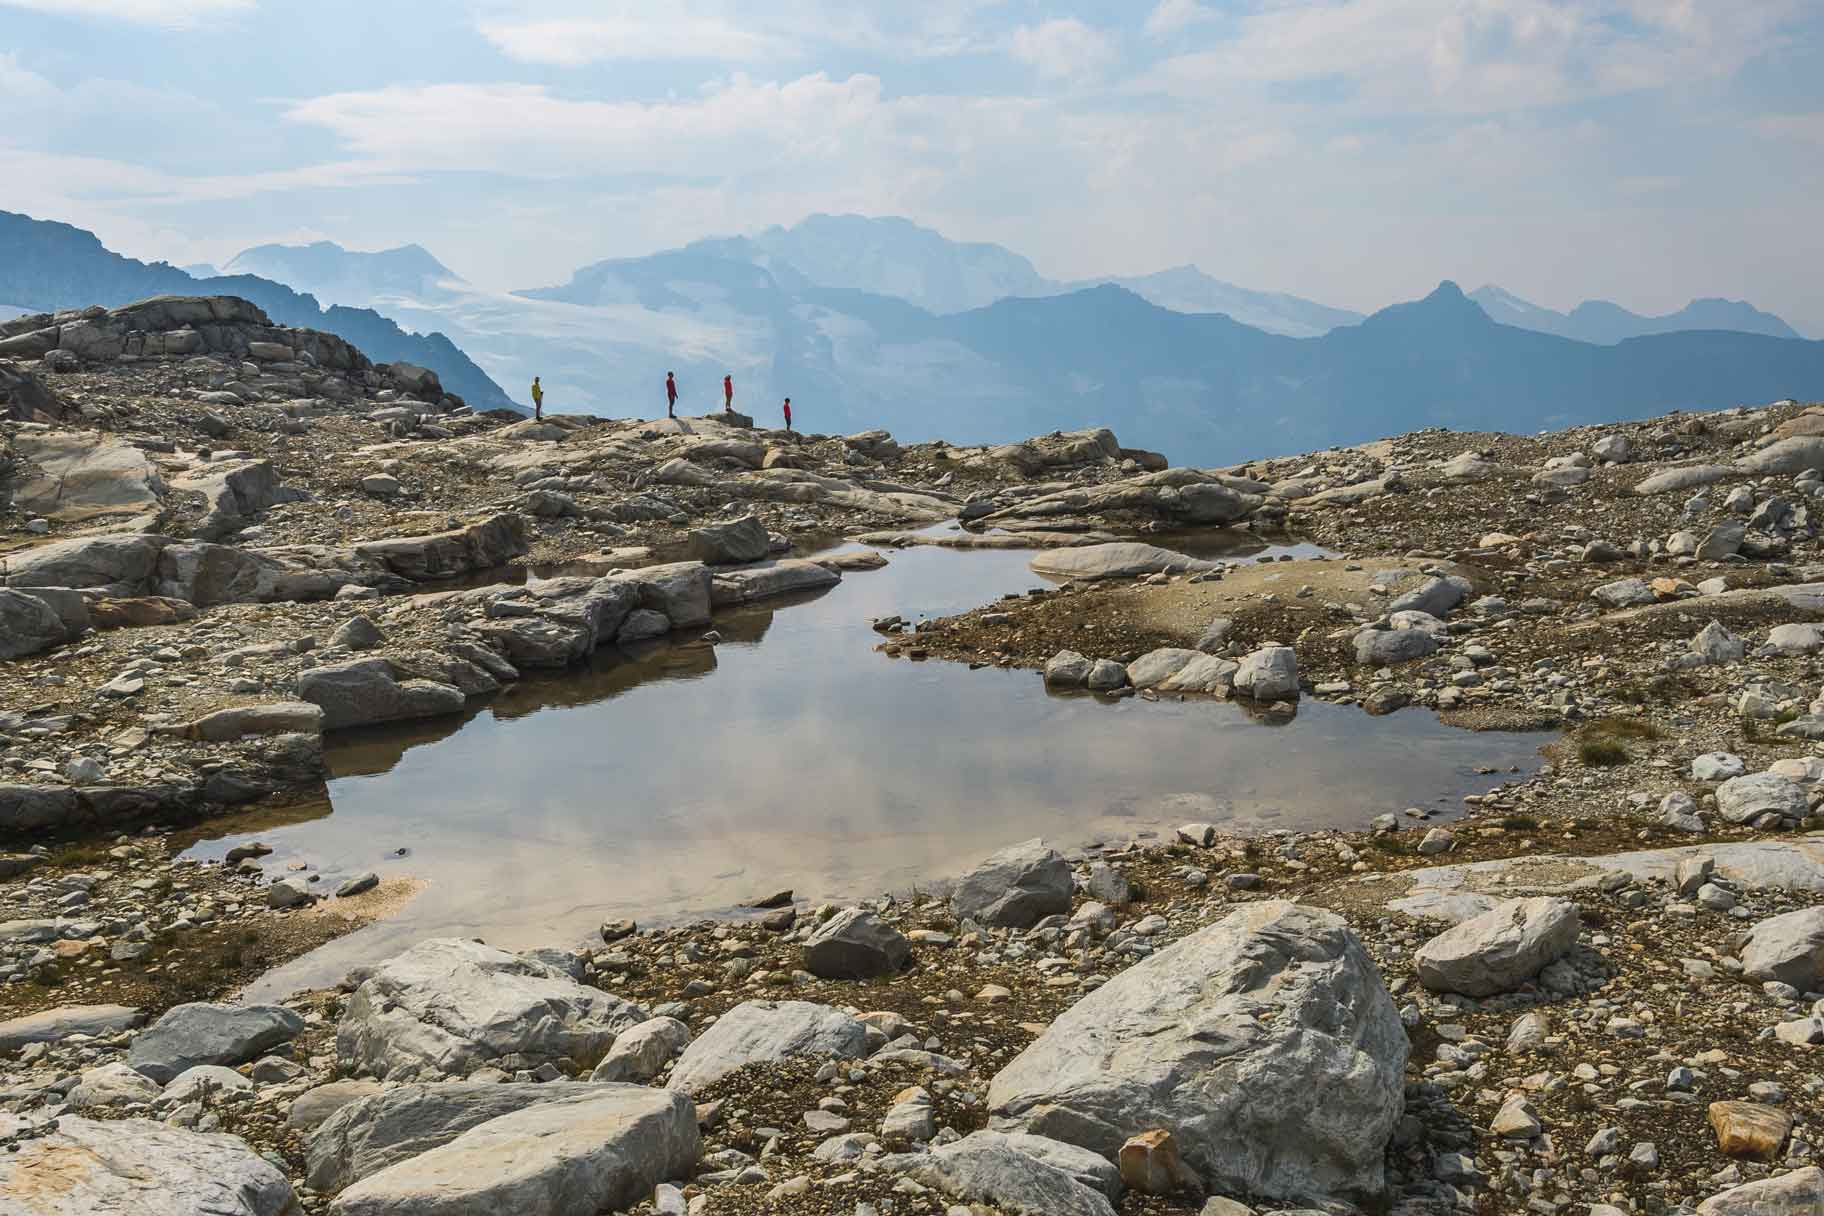 Four people walk off the beaten path at the edge of a small pond with mountain scenery in the background